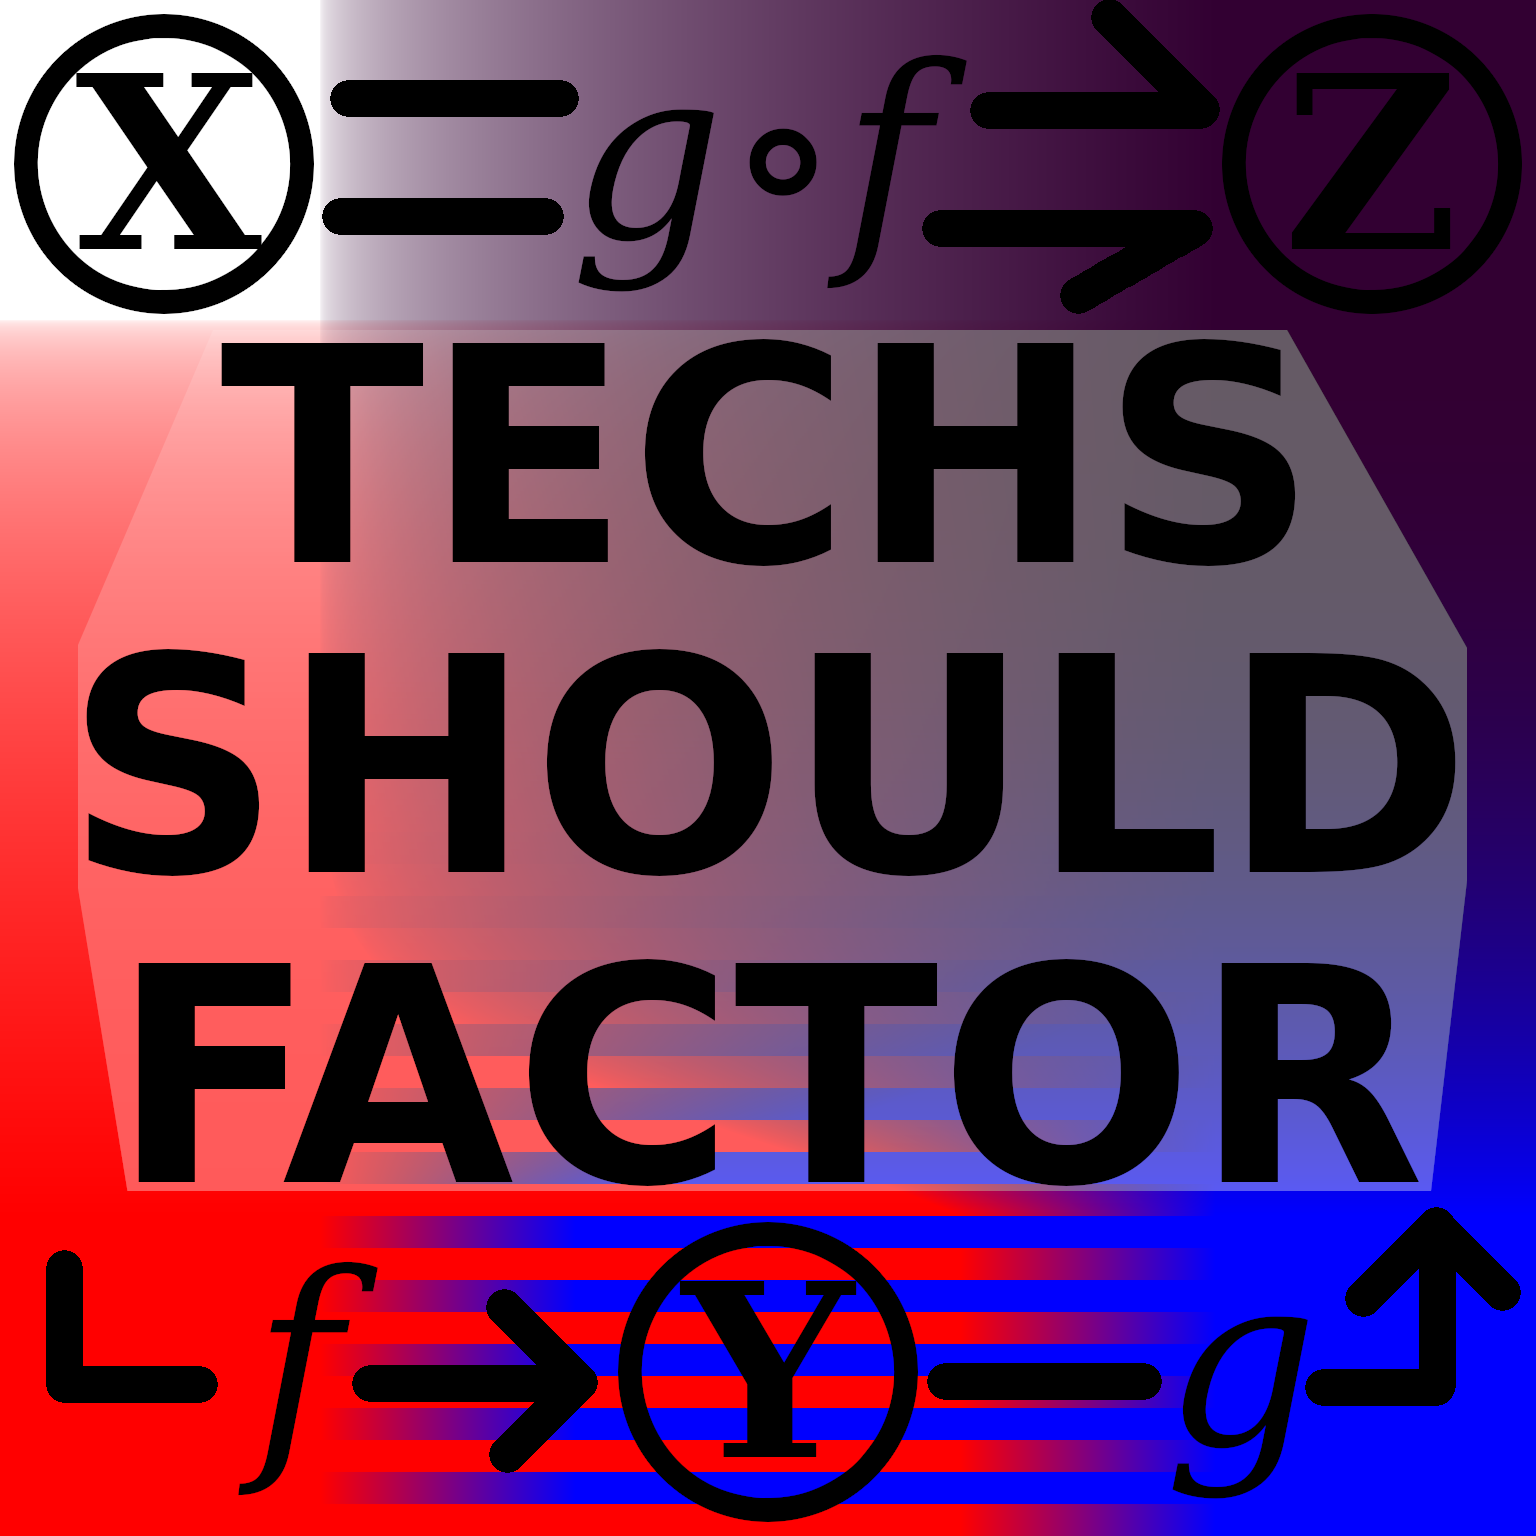 Techs should factor.